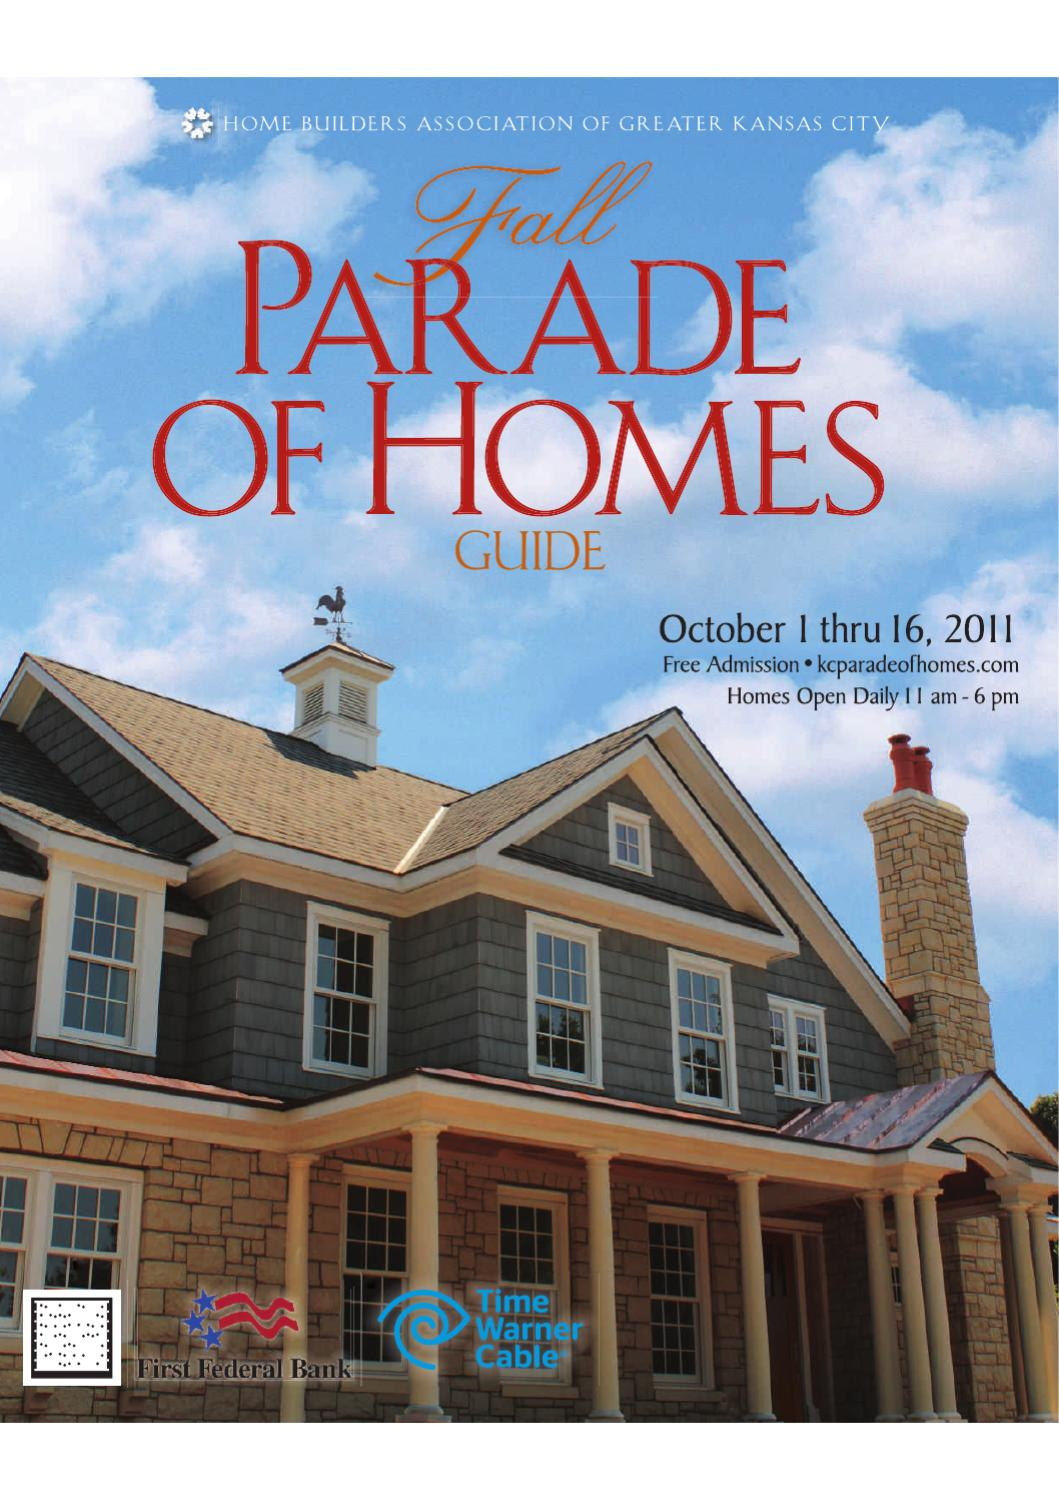 2011 Fall Parade Of Homes Guide By Home Builders